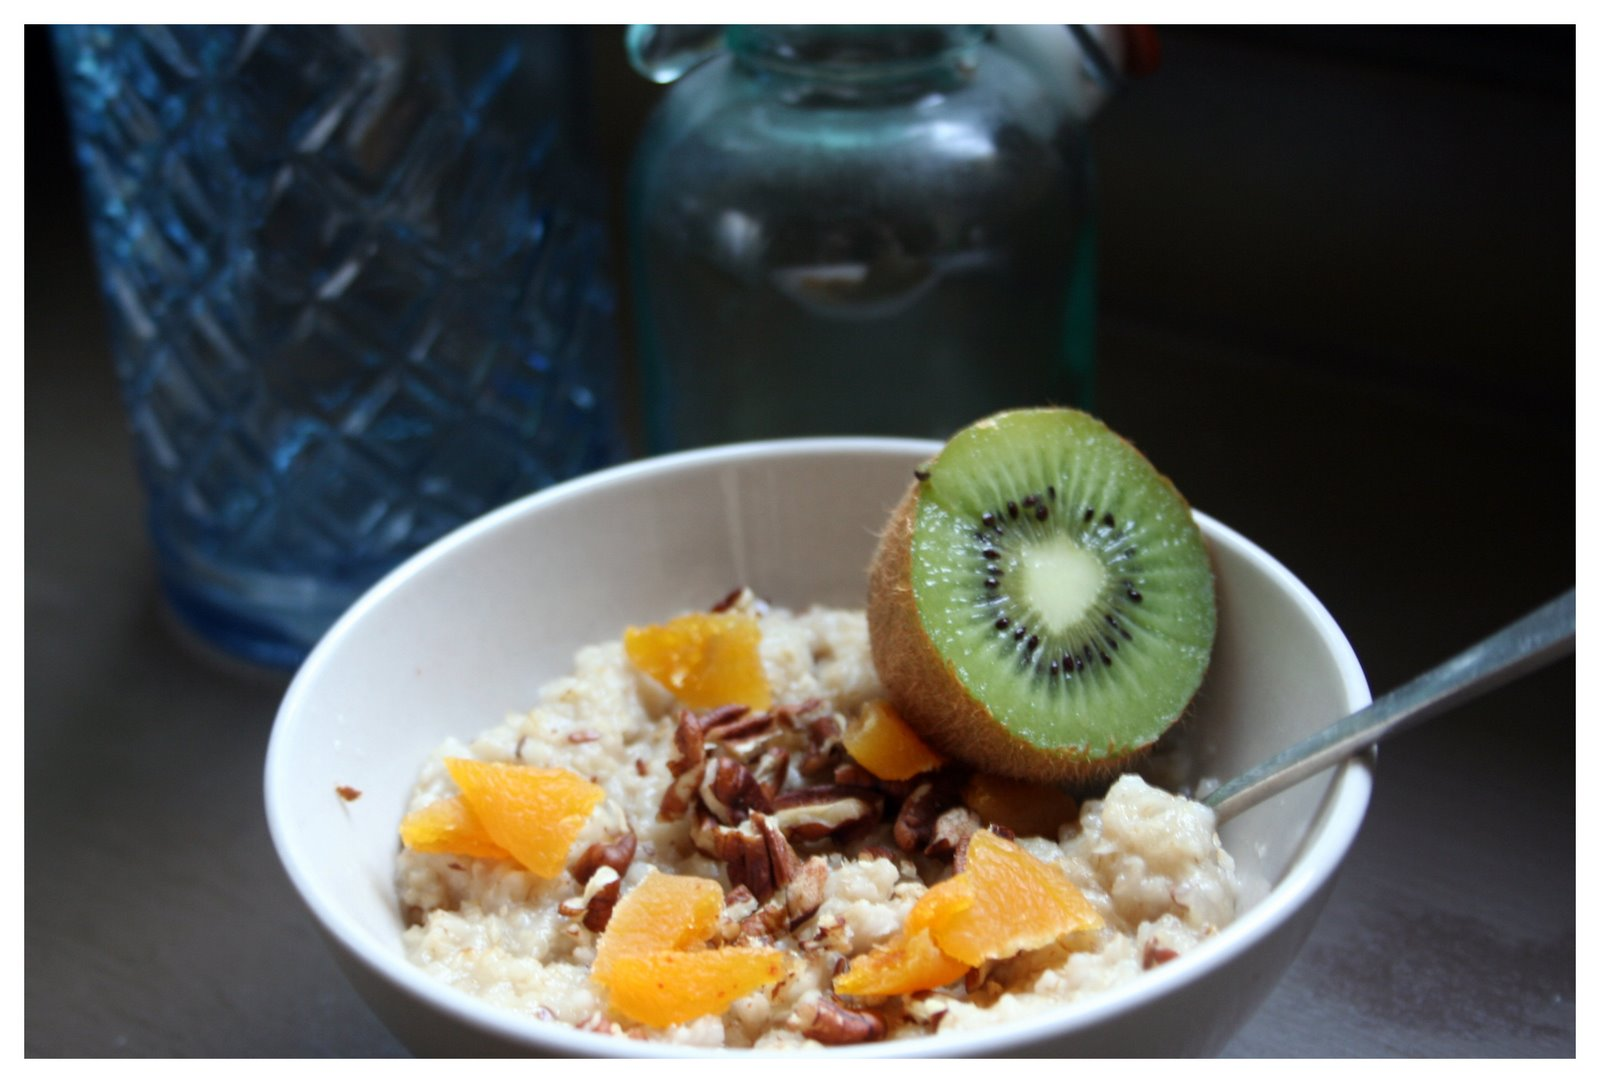 Oats with dried apricots and pecans